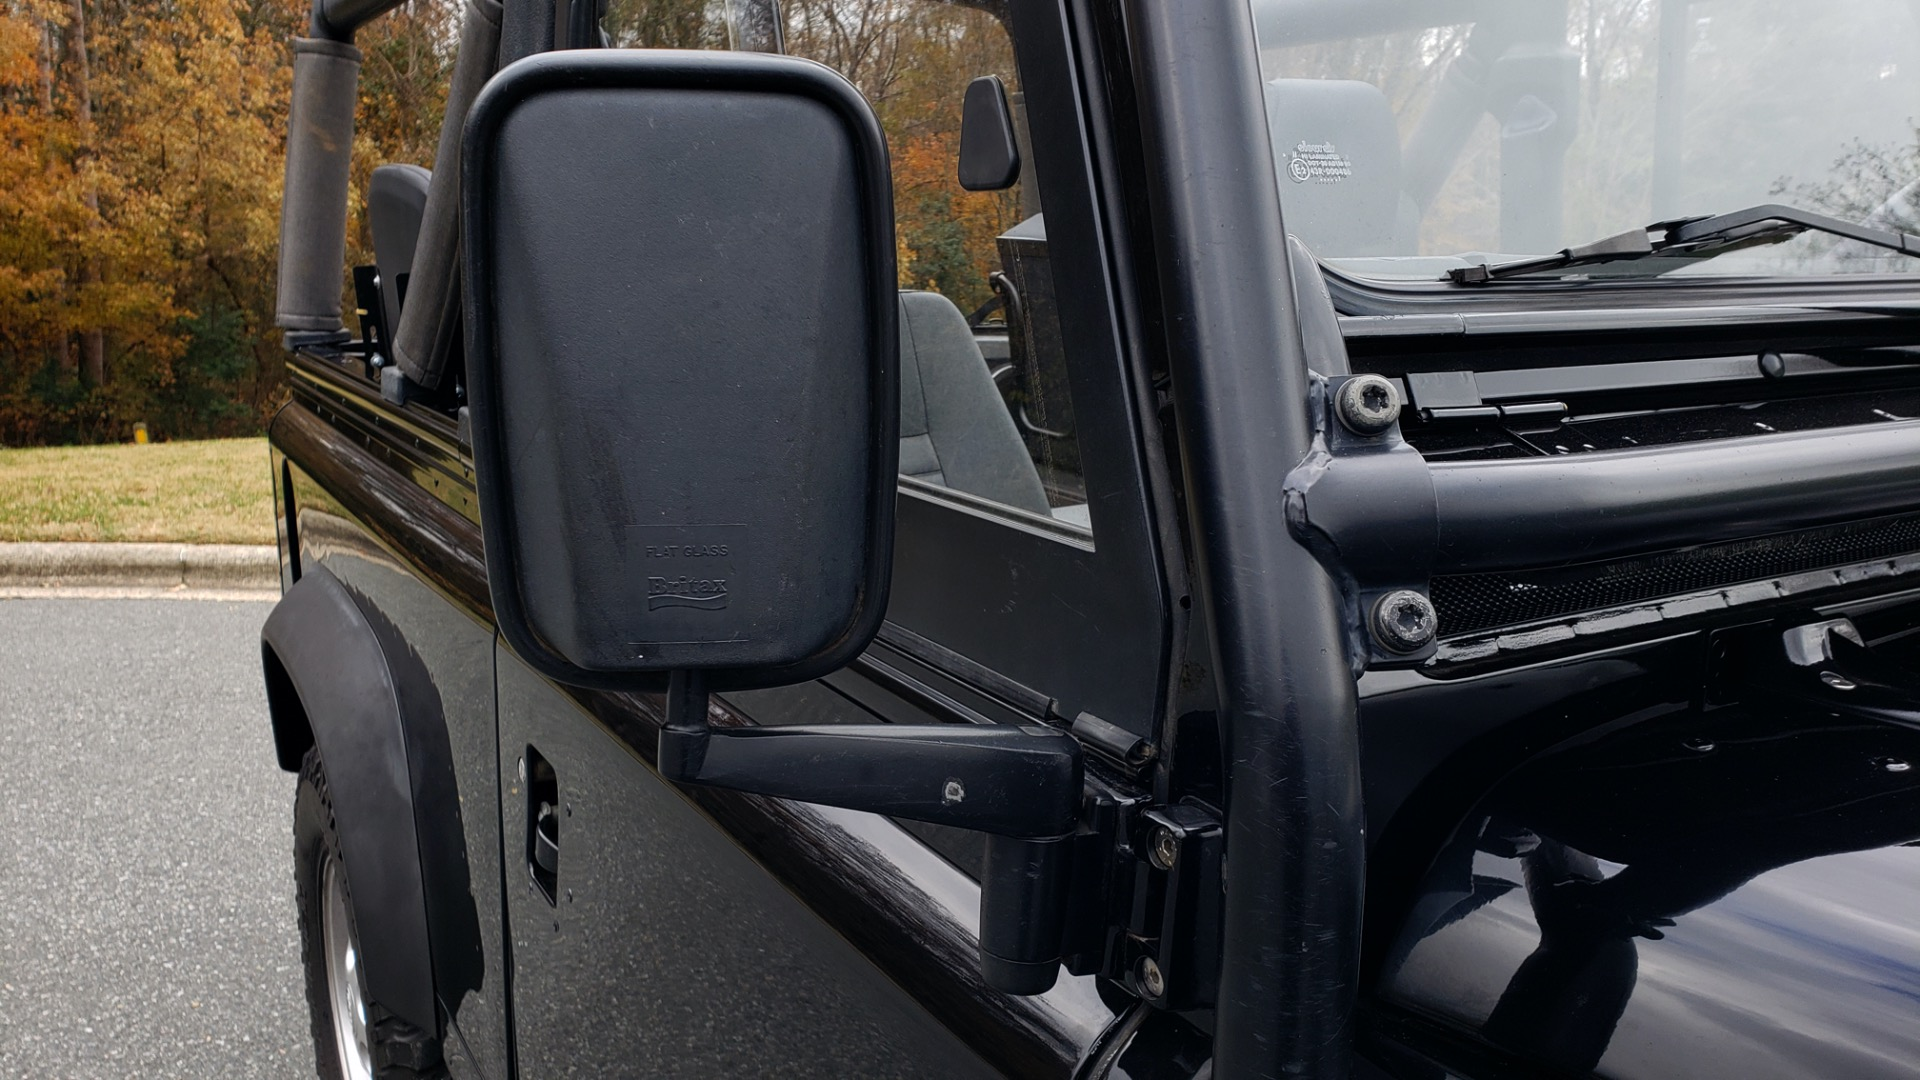 Used 1997 Land Rover DEFENDER 90 NAS SOFT-TOP 4x4 / LOW MILES / SUPER CLEAN for sale Sold at Formula Imports in Charlotte NC 28227 14